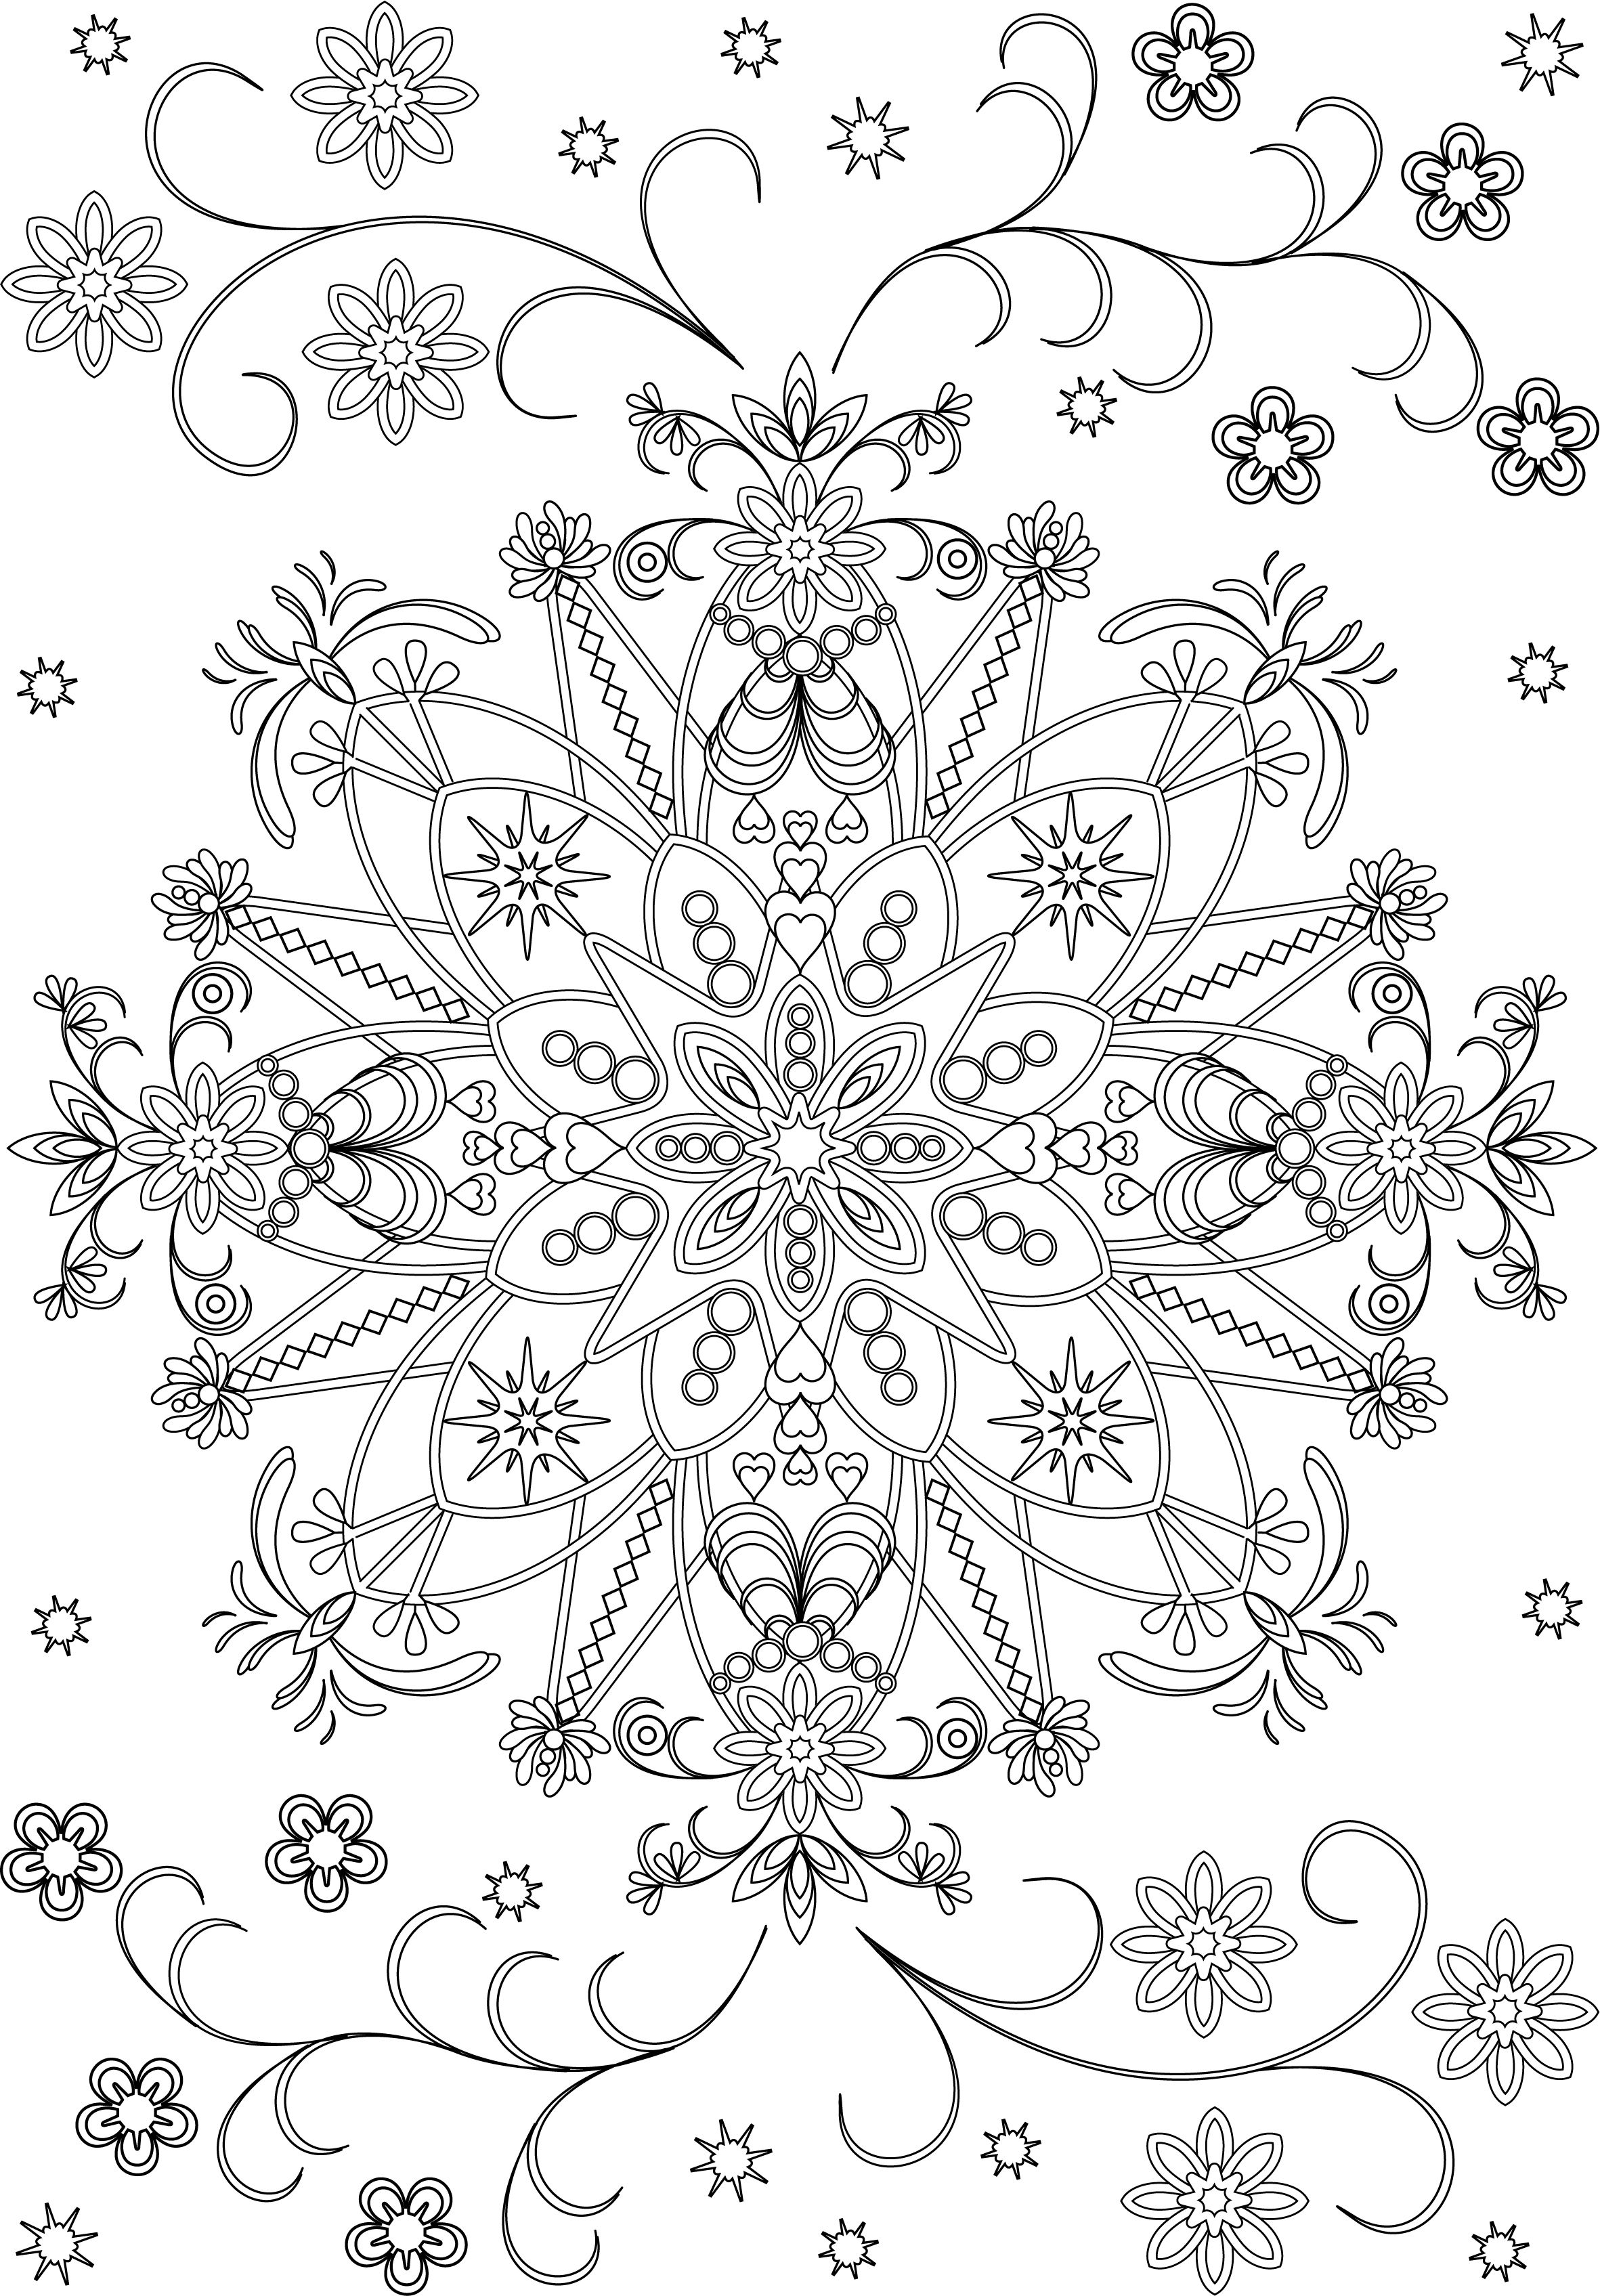 Decorative Round Ornament Flower Mandala Vector Illustration For